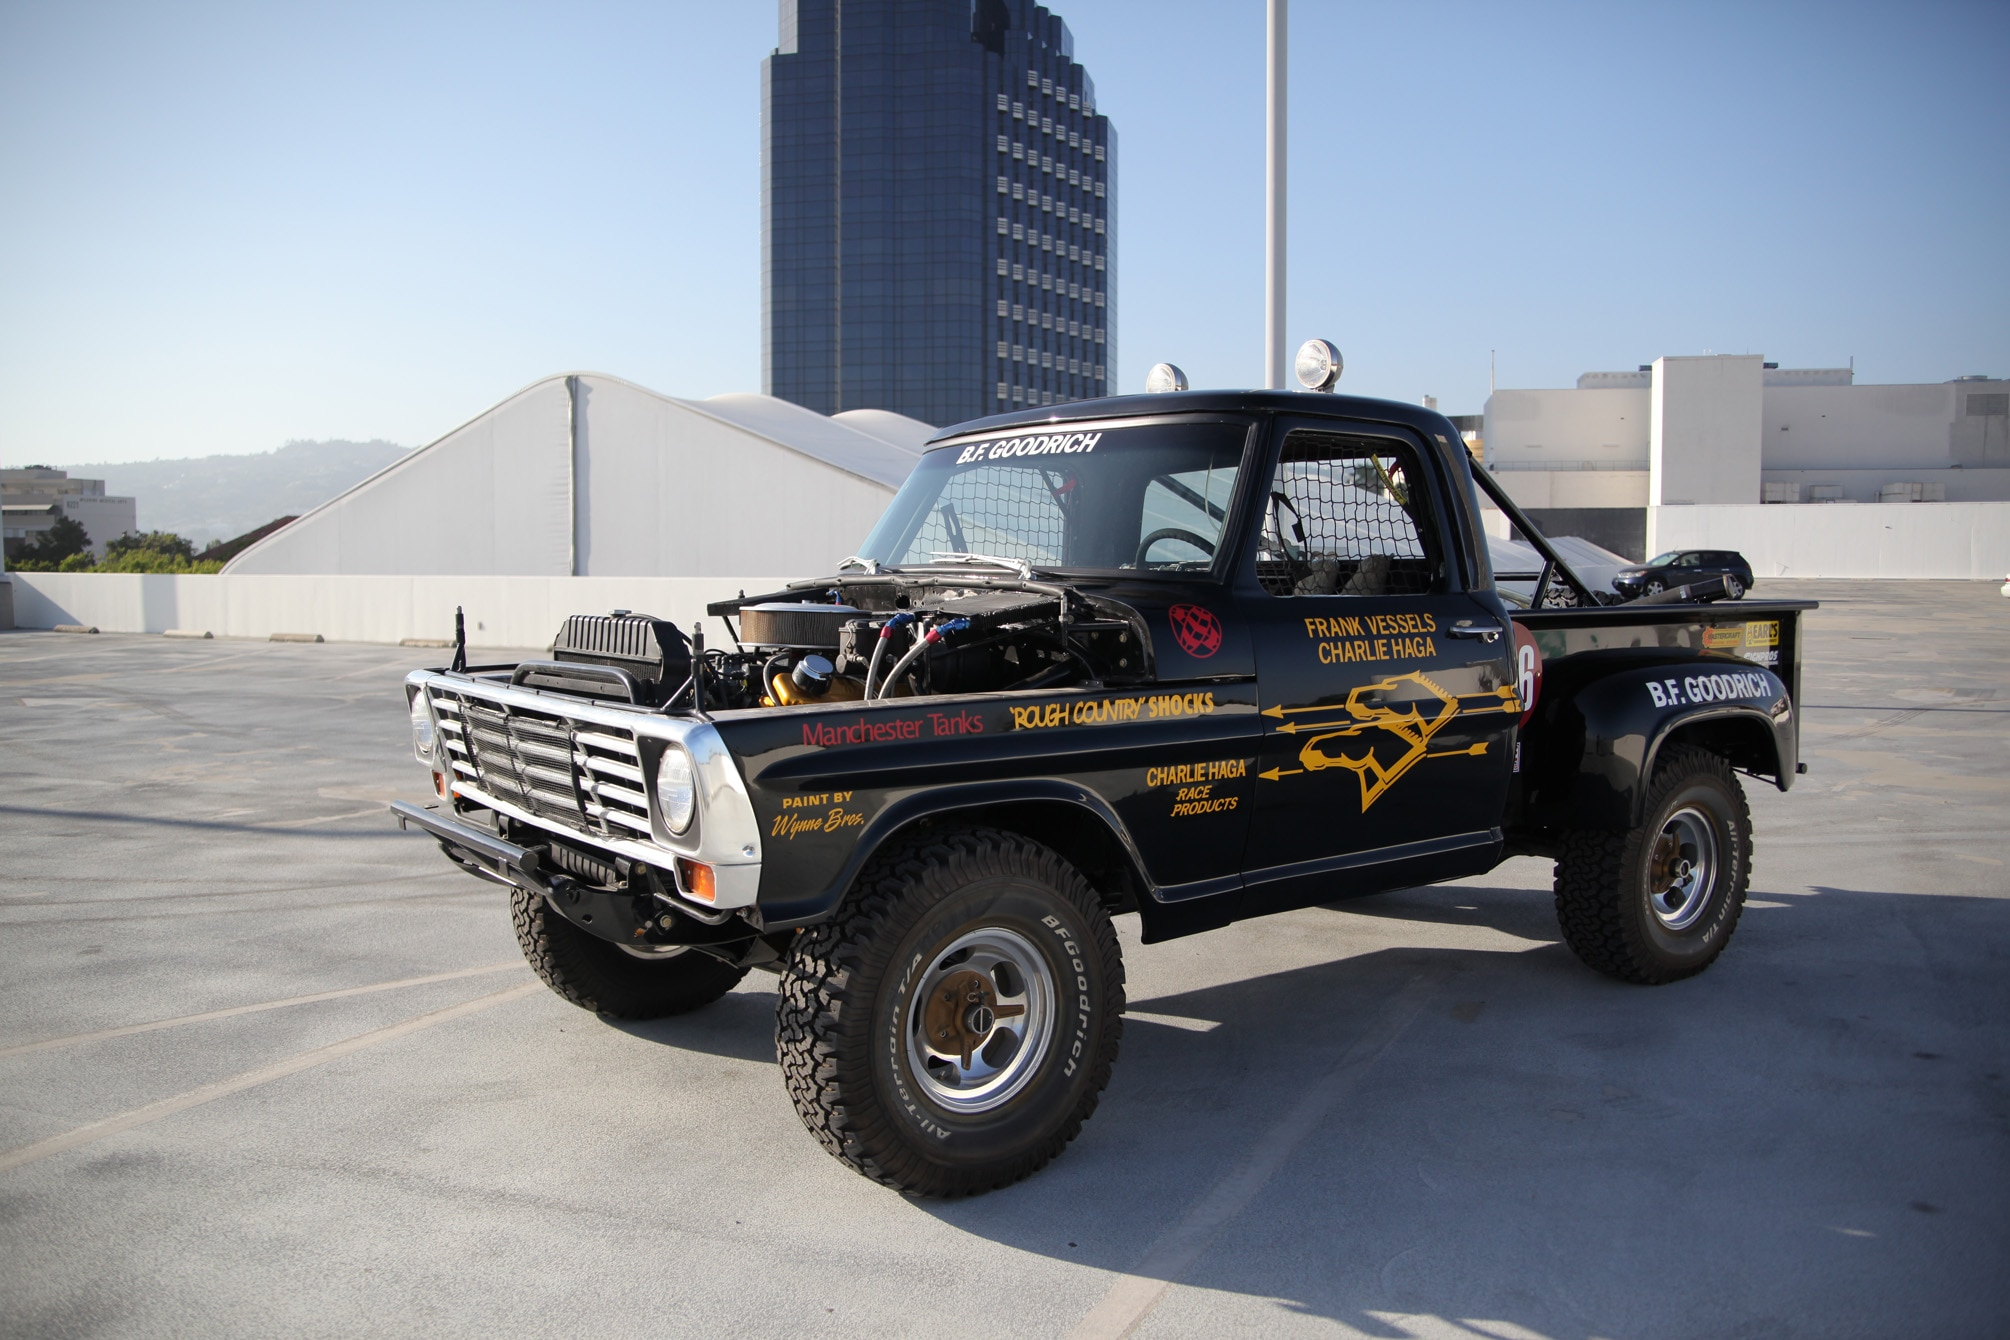 hight resolution of frank scoop vessels 1972 ford f100 race truck goes to auction